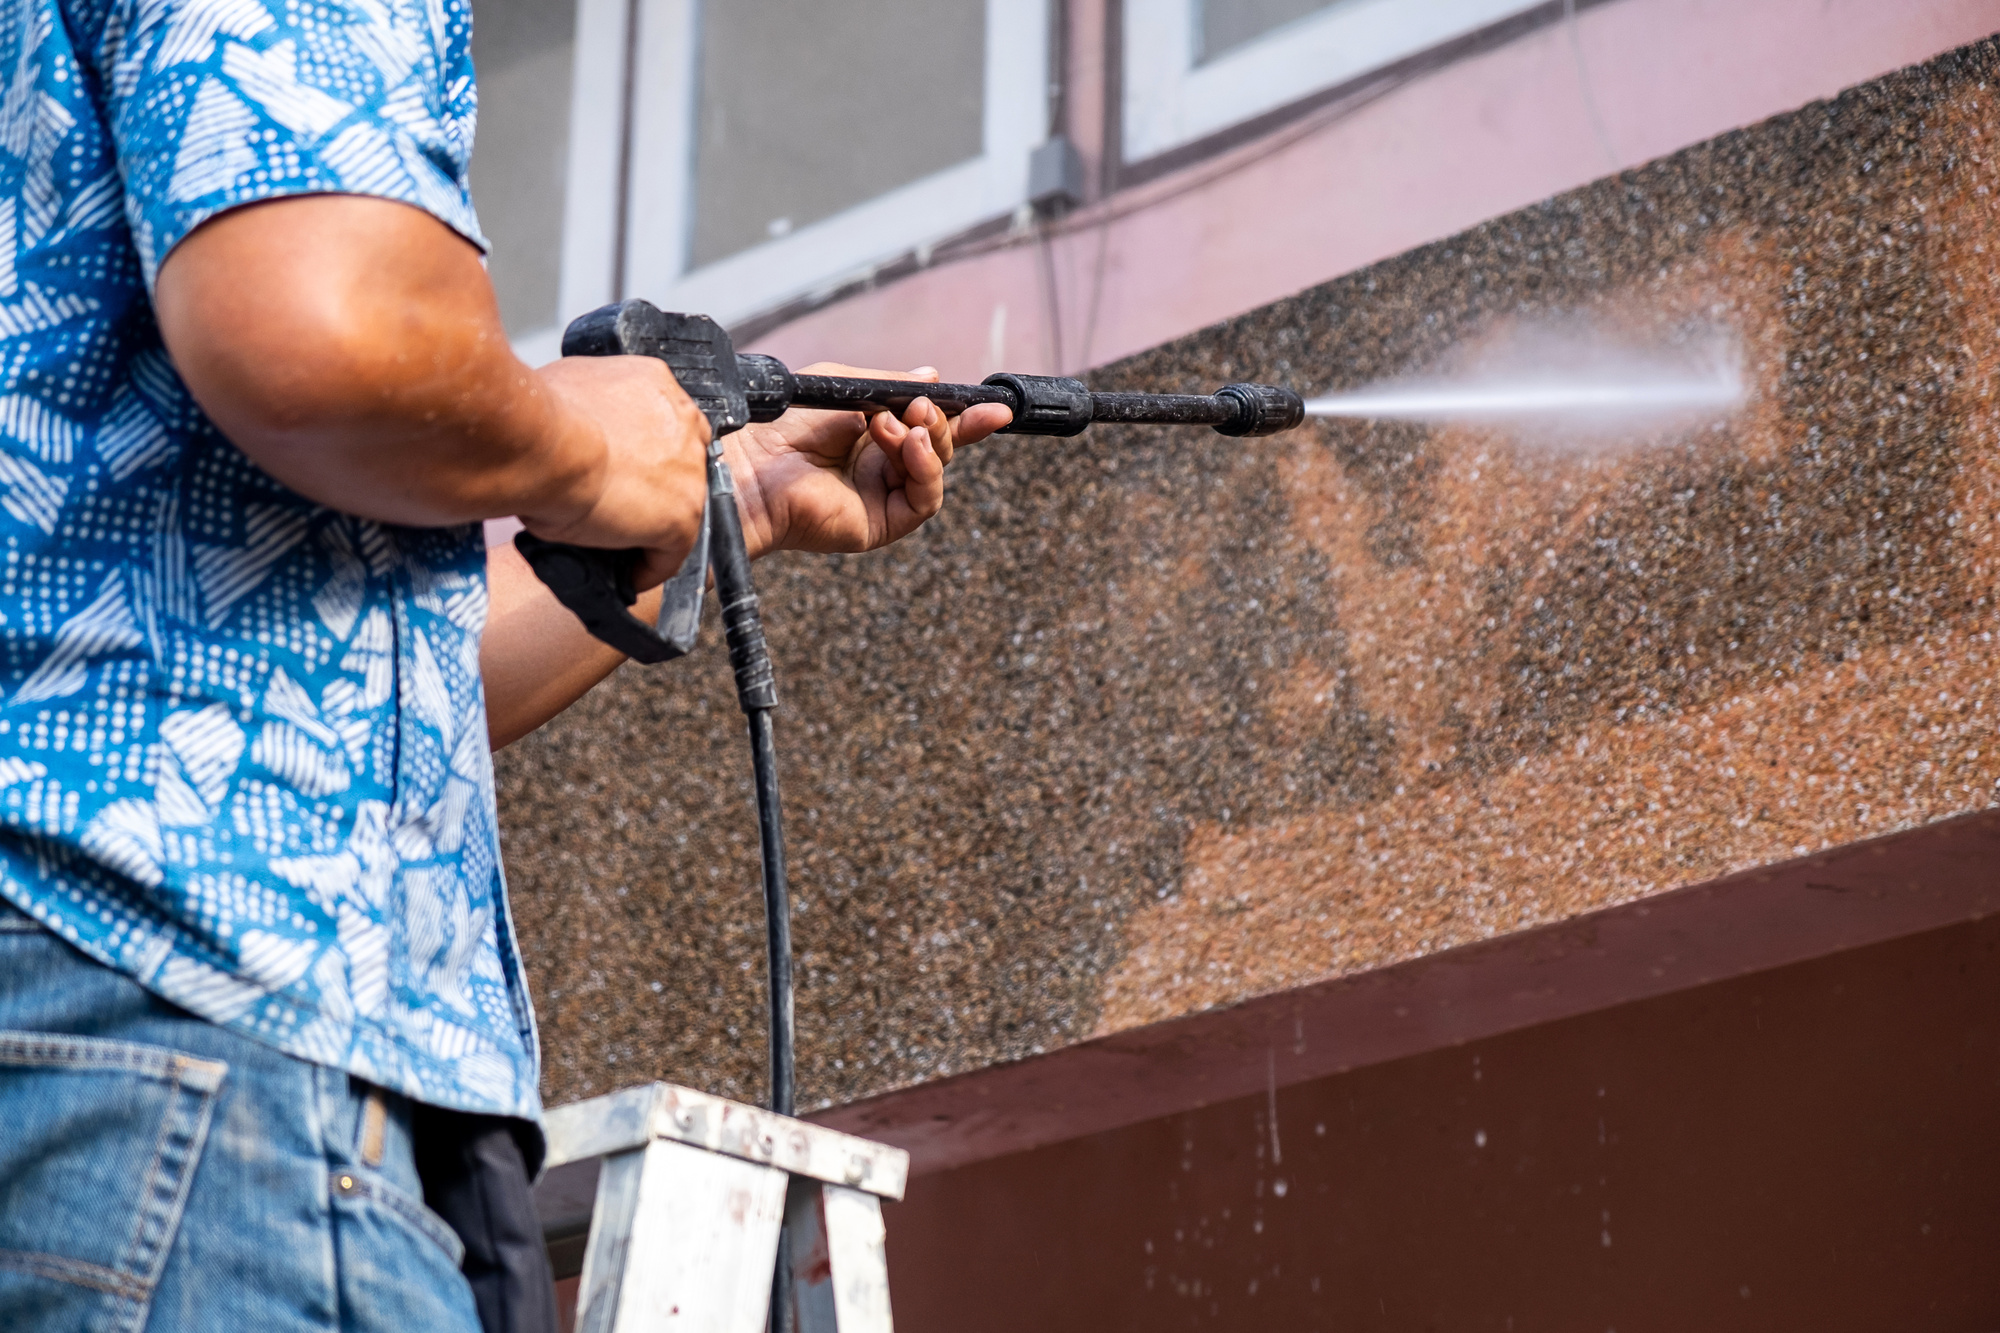 Top 5 Benefits of Pressure Washing for Your Home